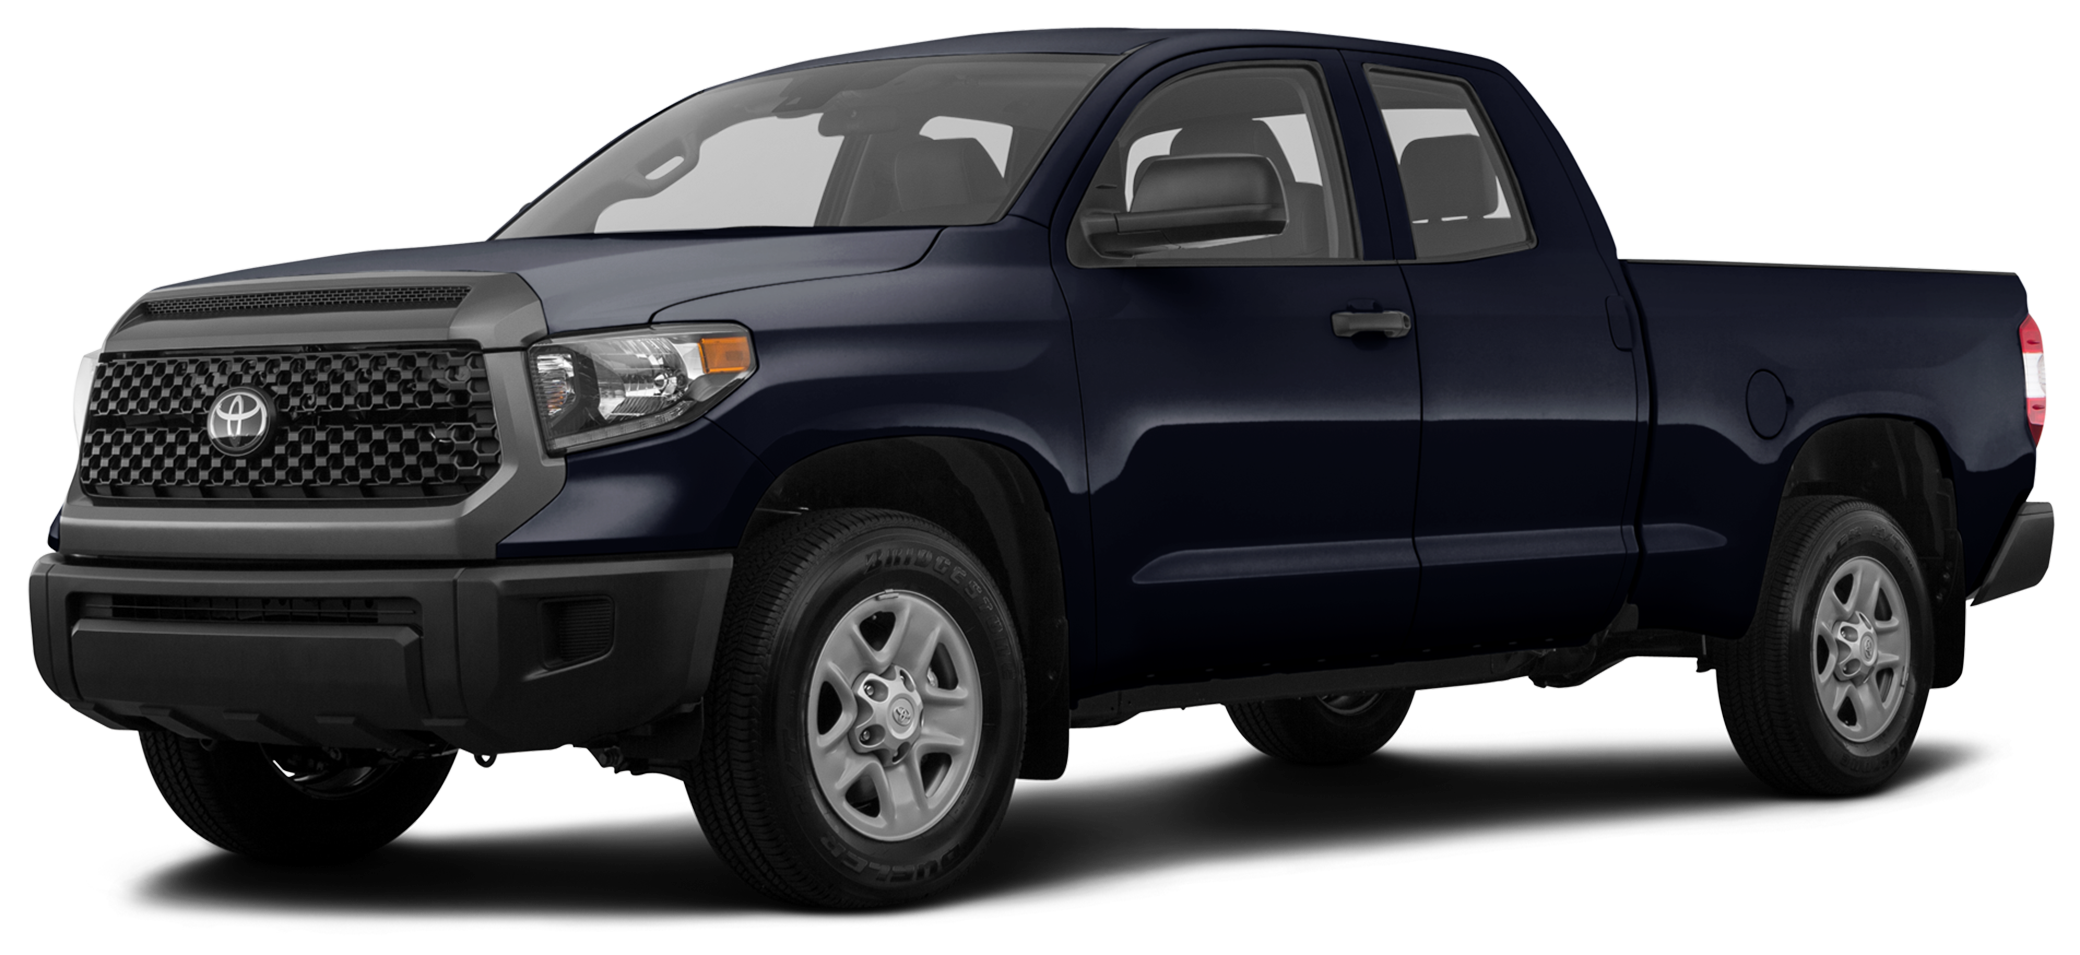 Review & Compare the 2018 Toyota Tundra at Larry H. Miller